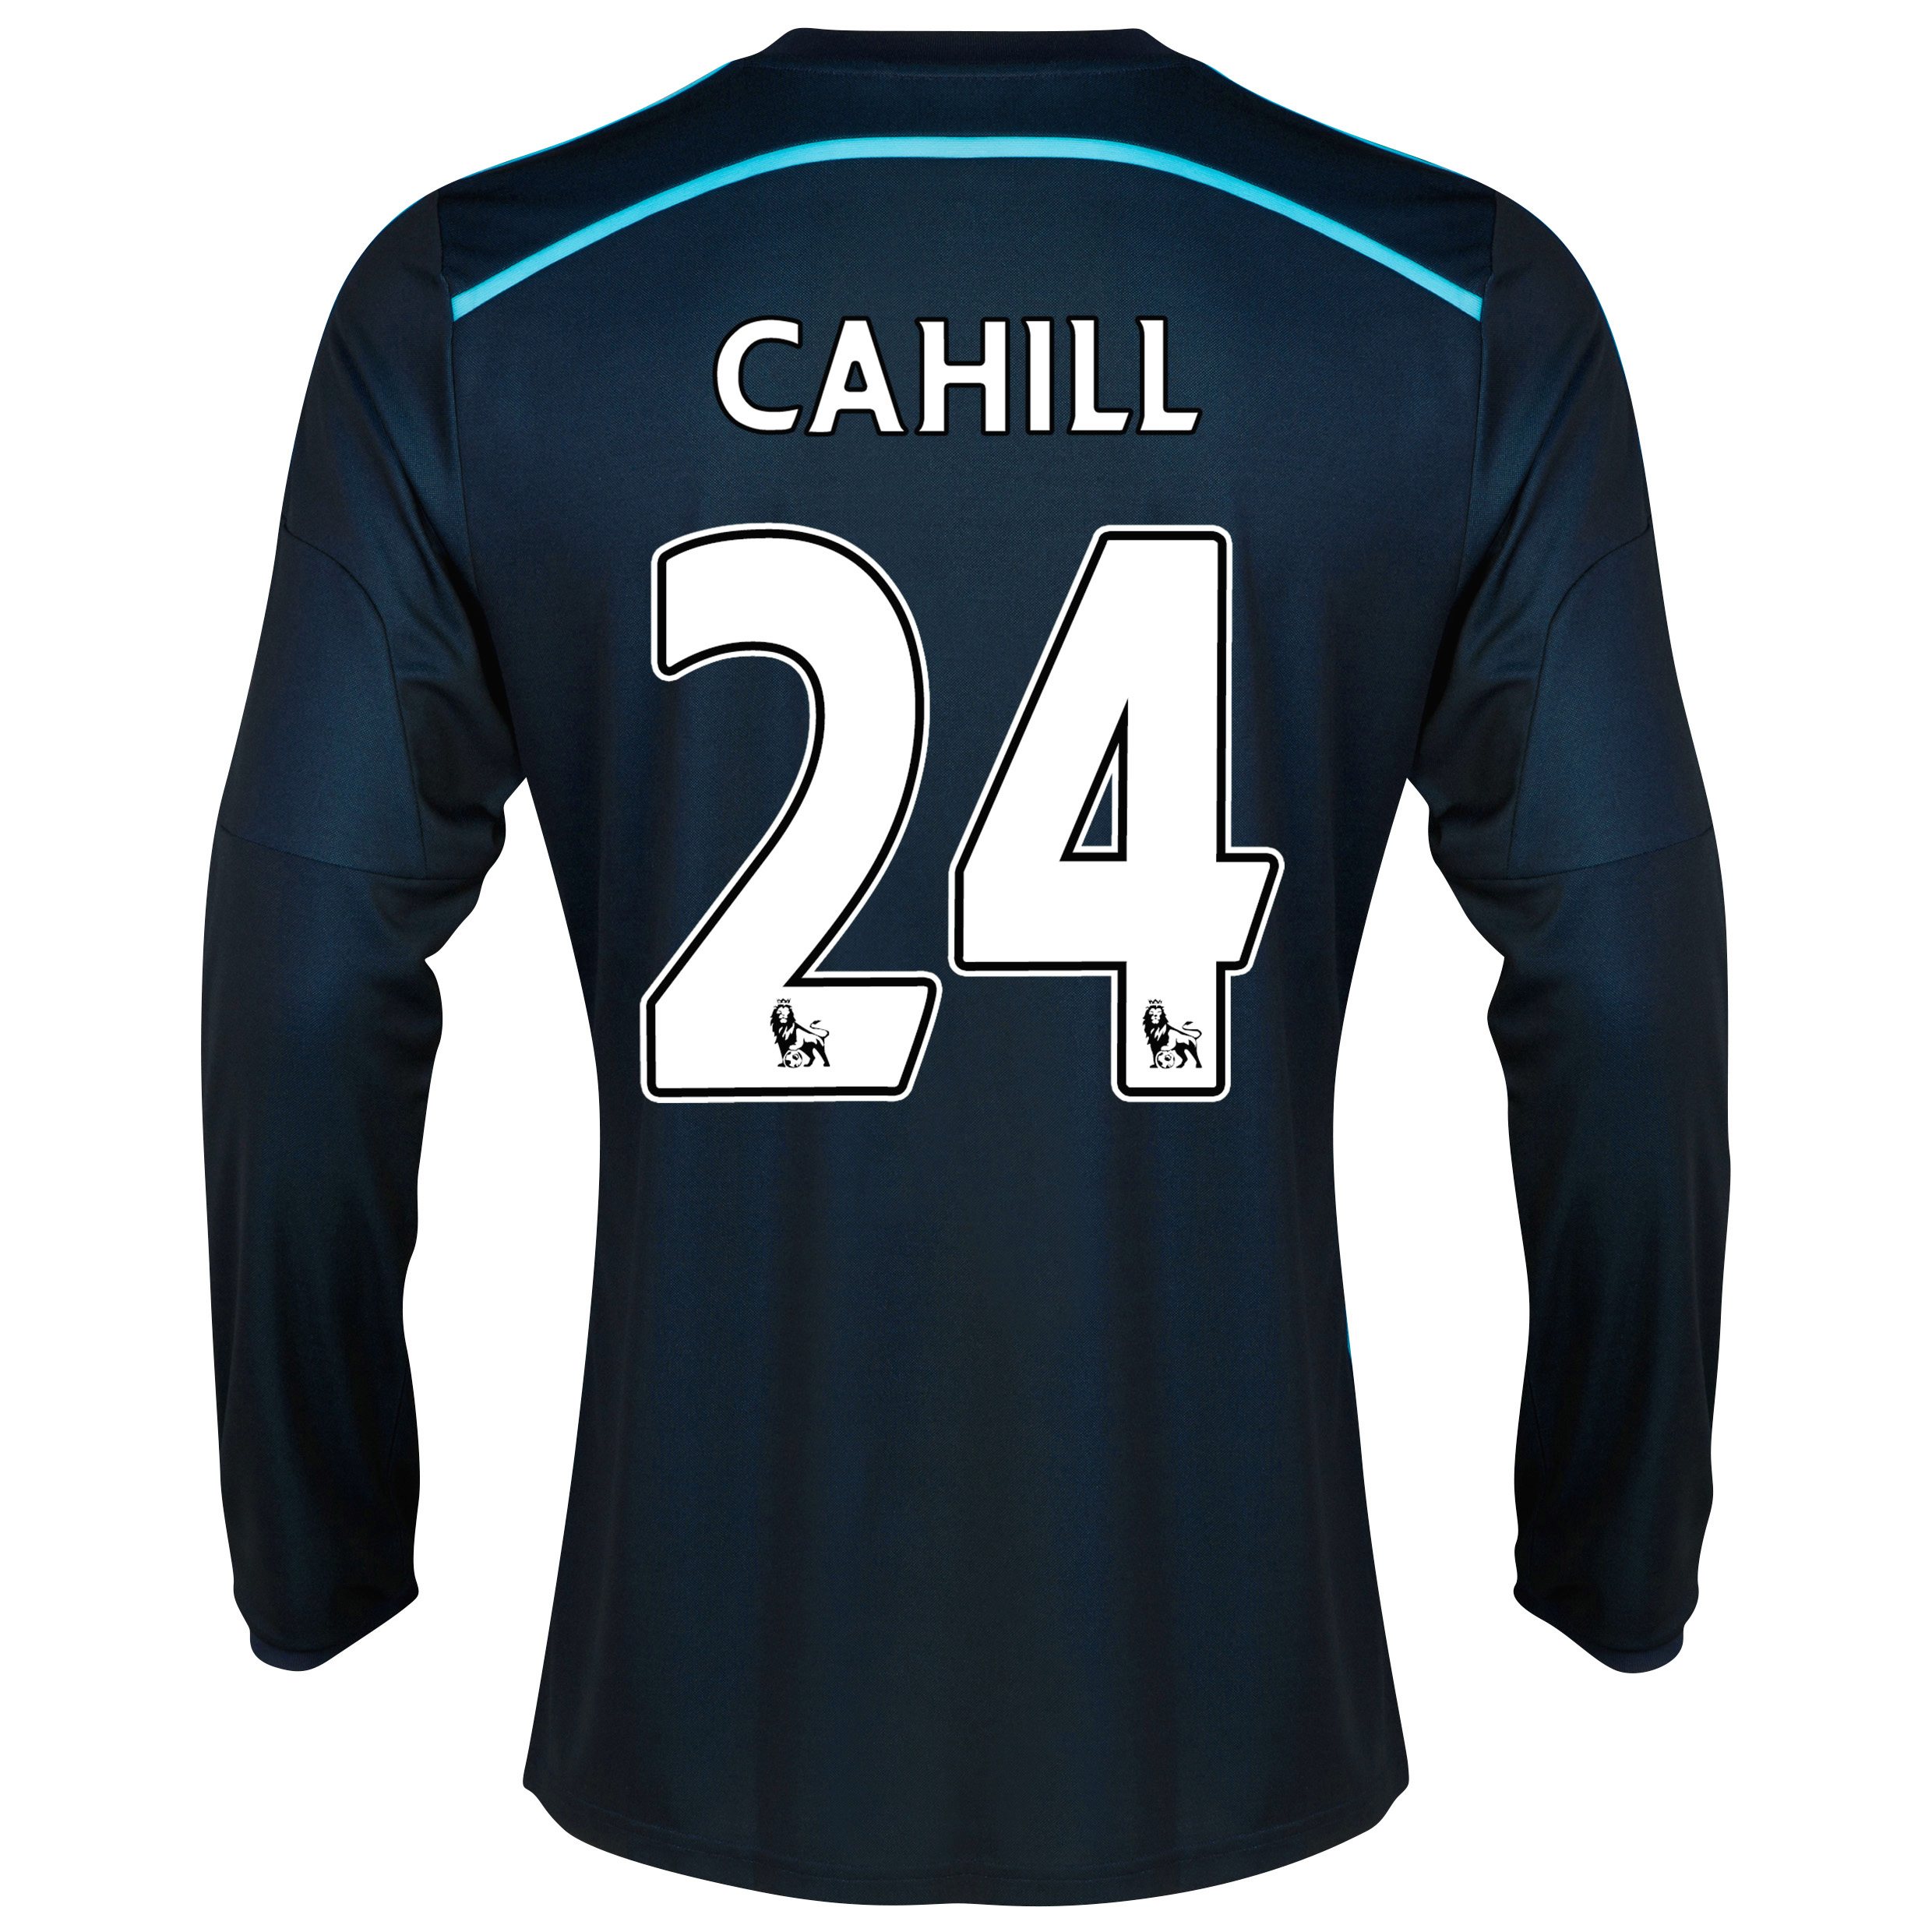 Chelsea Third Shirt 2014/15 - Long Sleeve with Cahill 24 printing